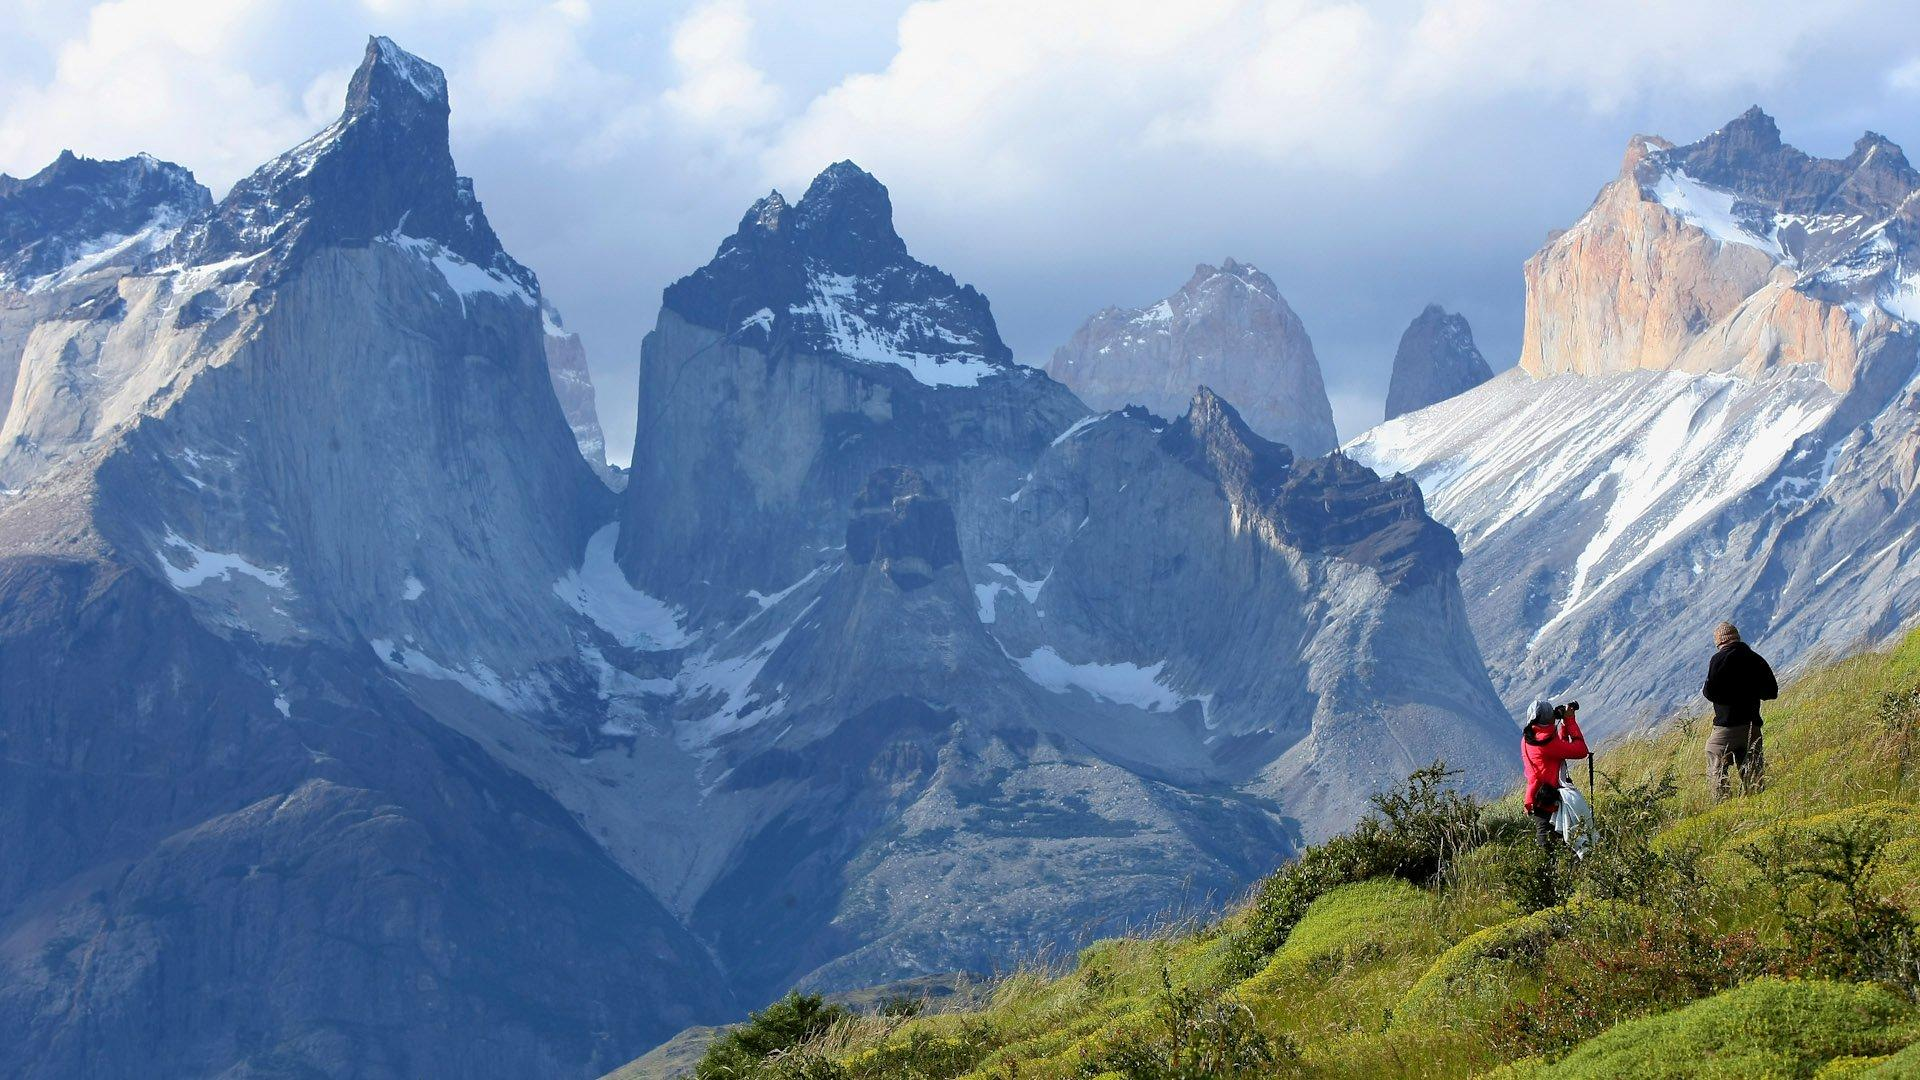 patagonia travel argentina lonely planet - 1280×764